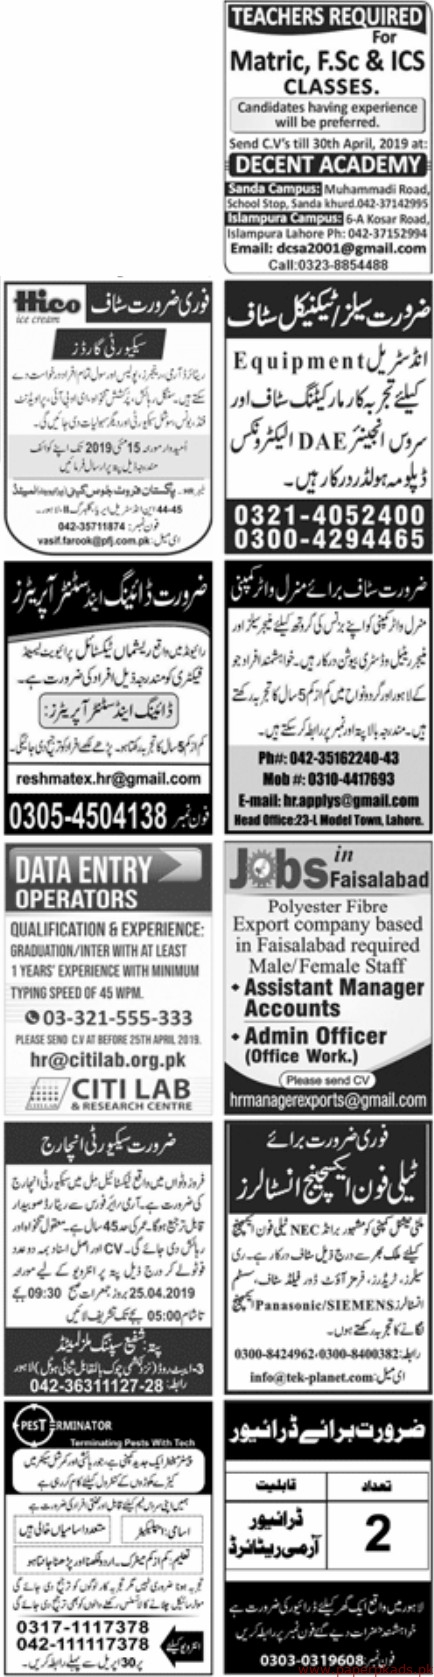 Latest Jang Newspaper Jobs 21 April 2019 Latest